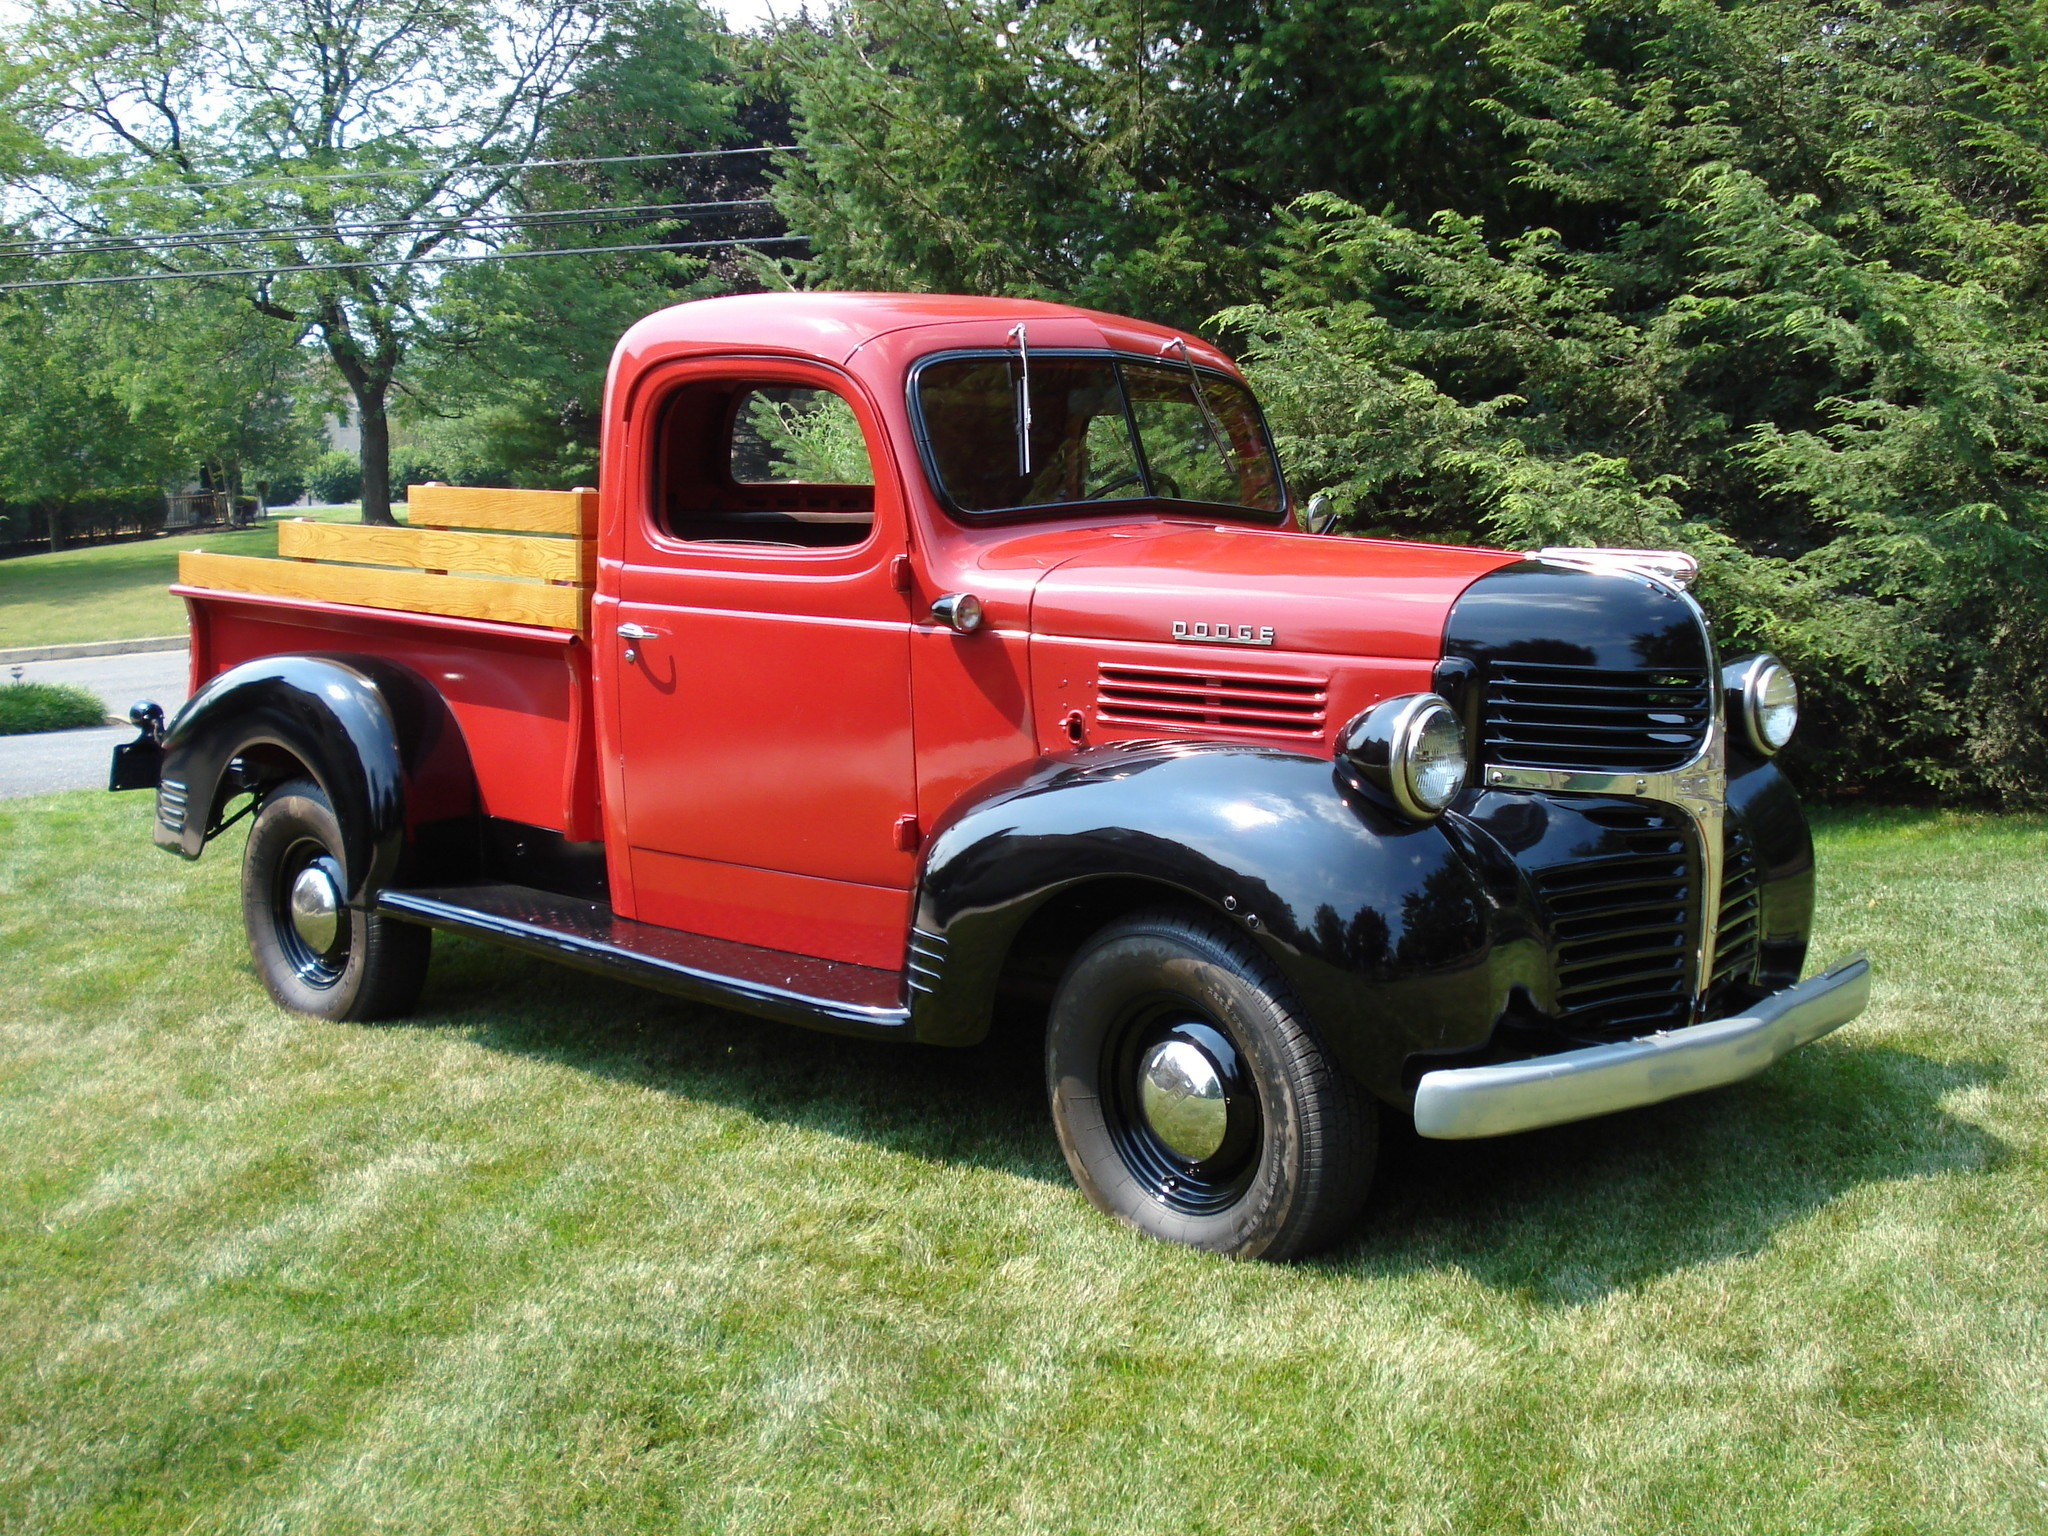 1946 Dodge WC Pickup - The Morning Call